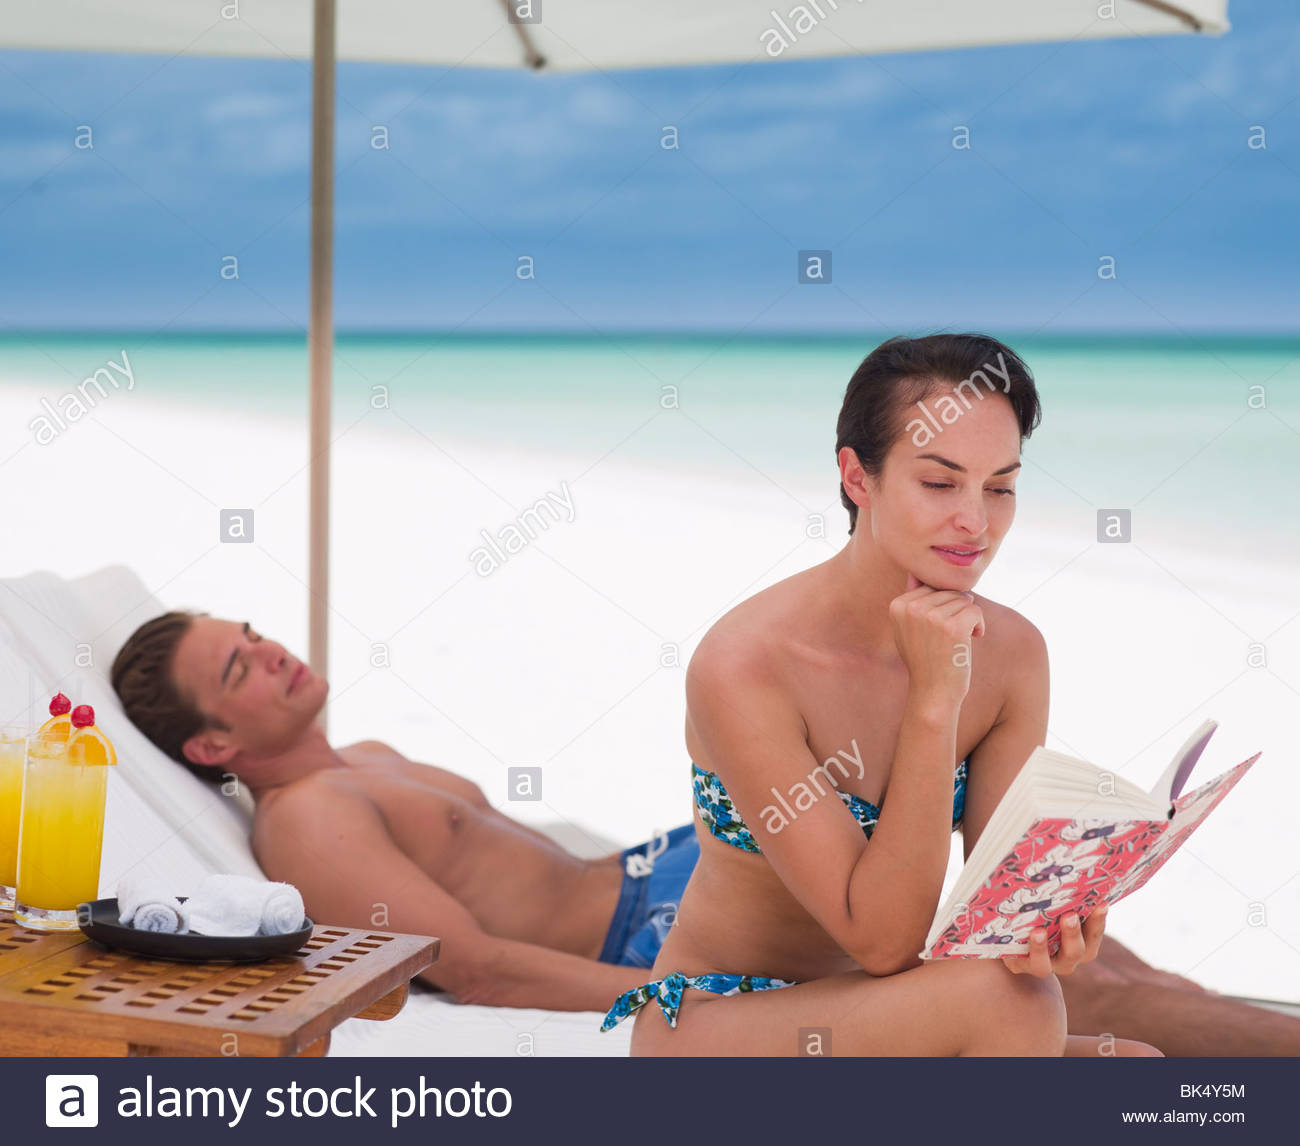 Woman reading book and man laying on lounge chair on beach - Stock Image